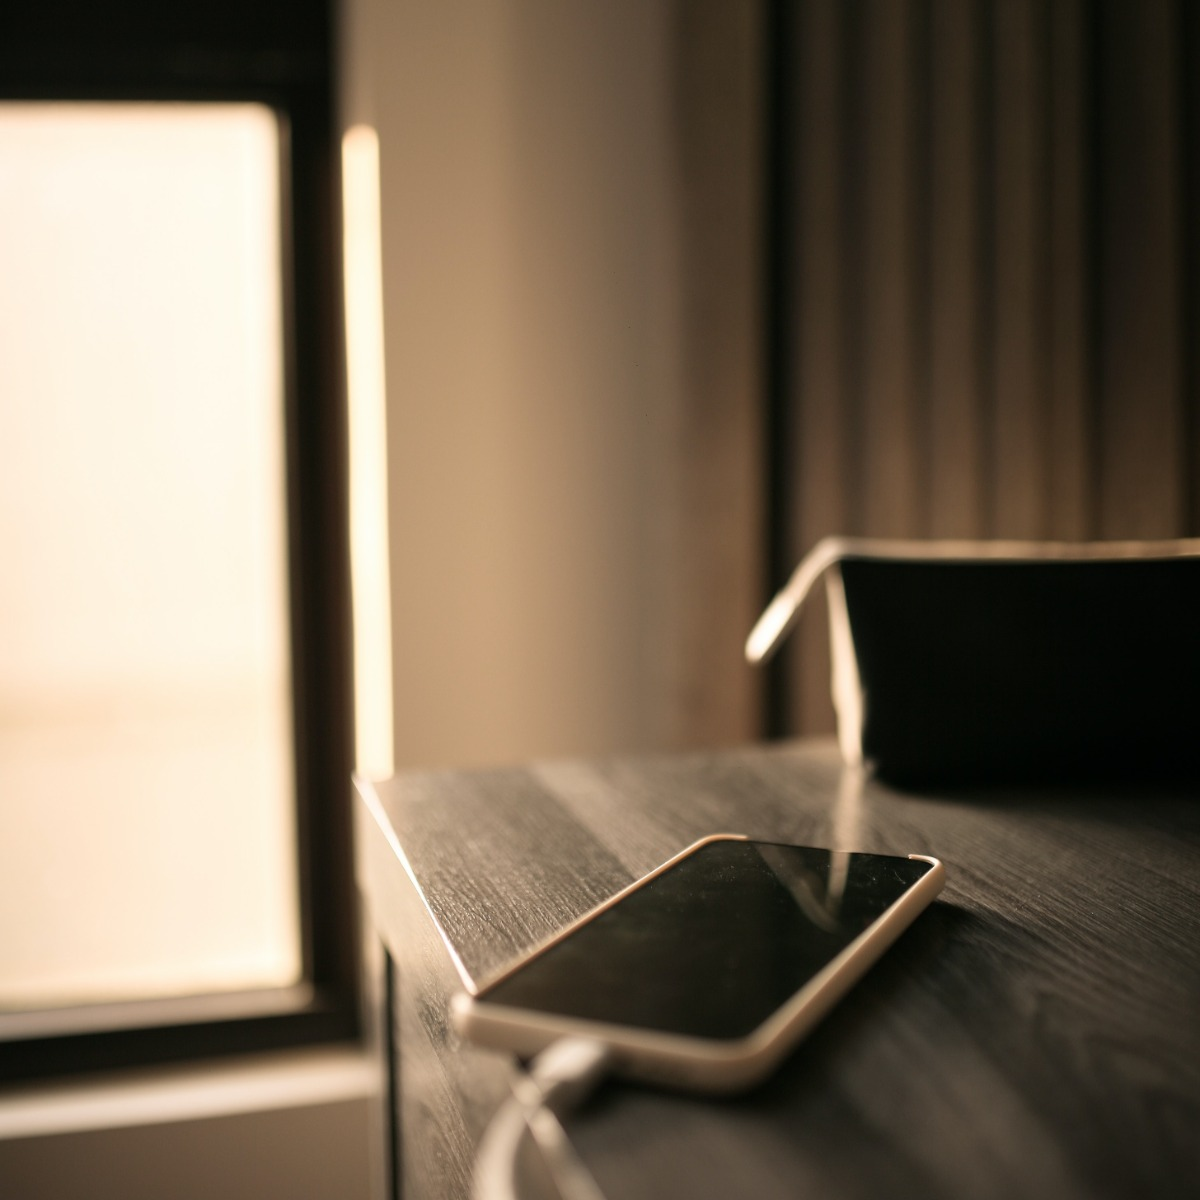 Will you use smartphone in the dark?